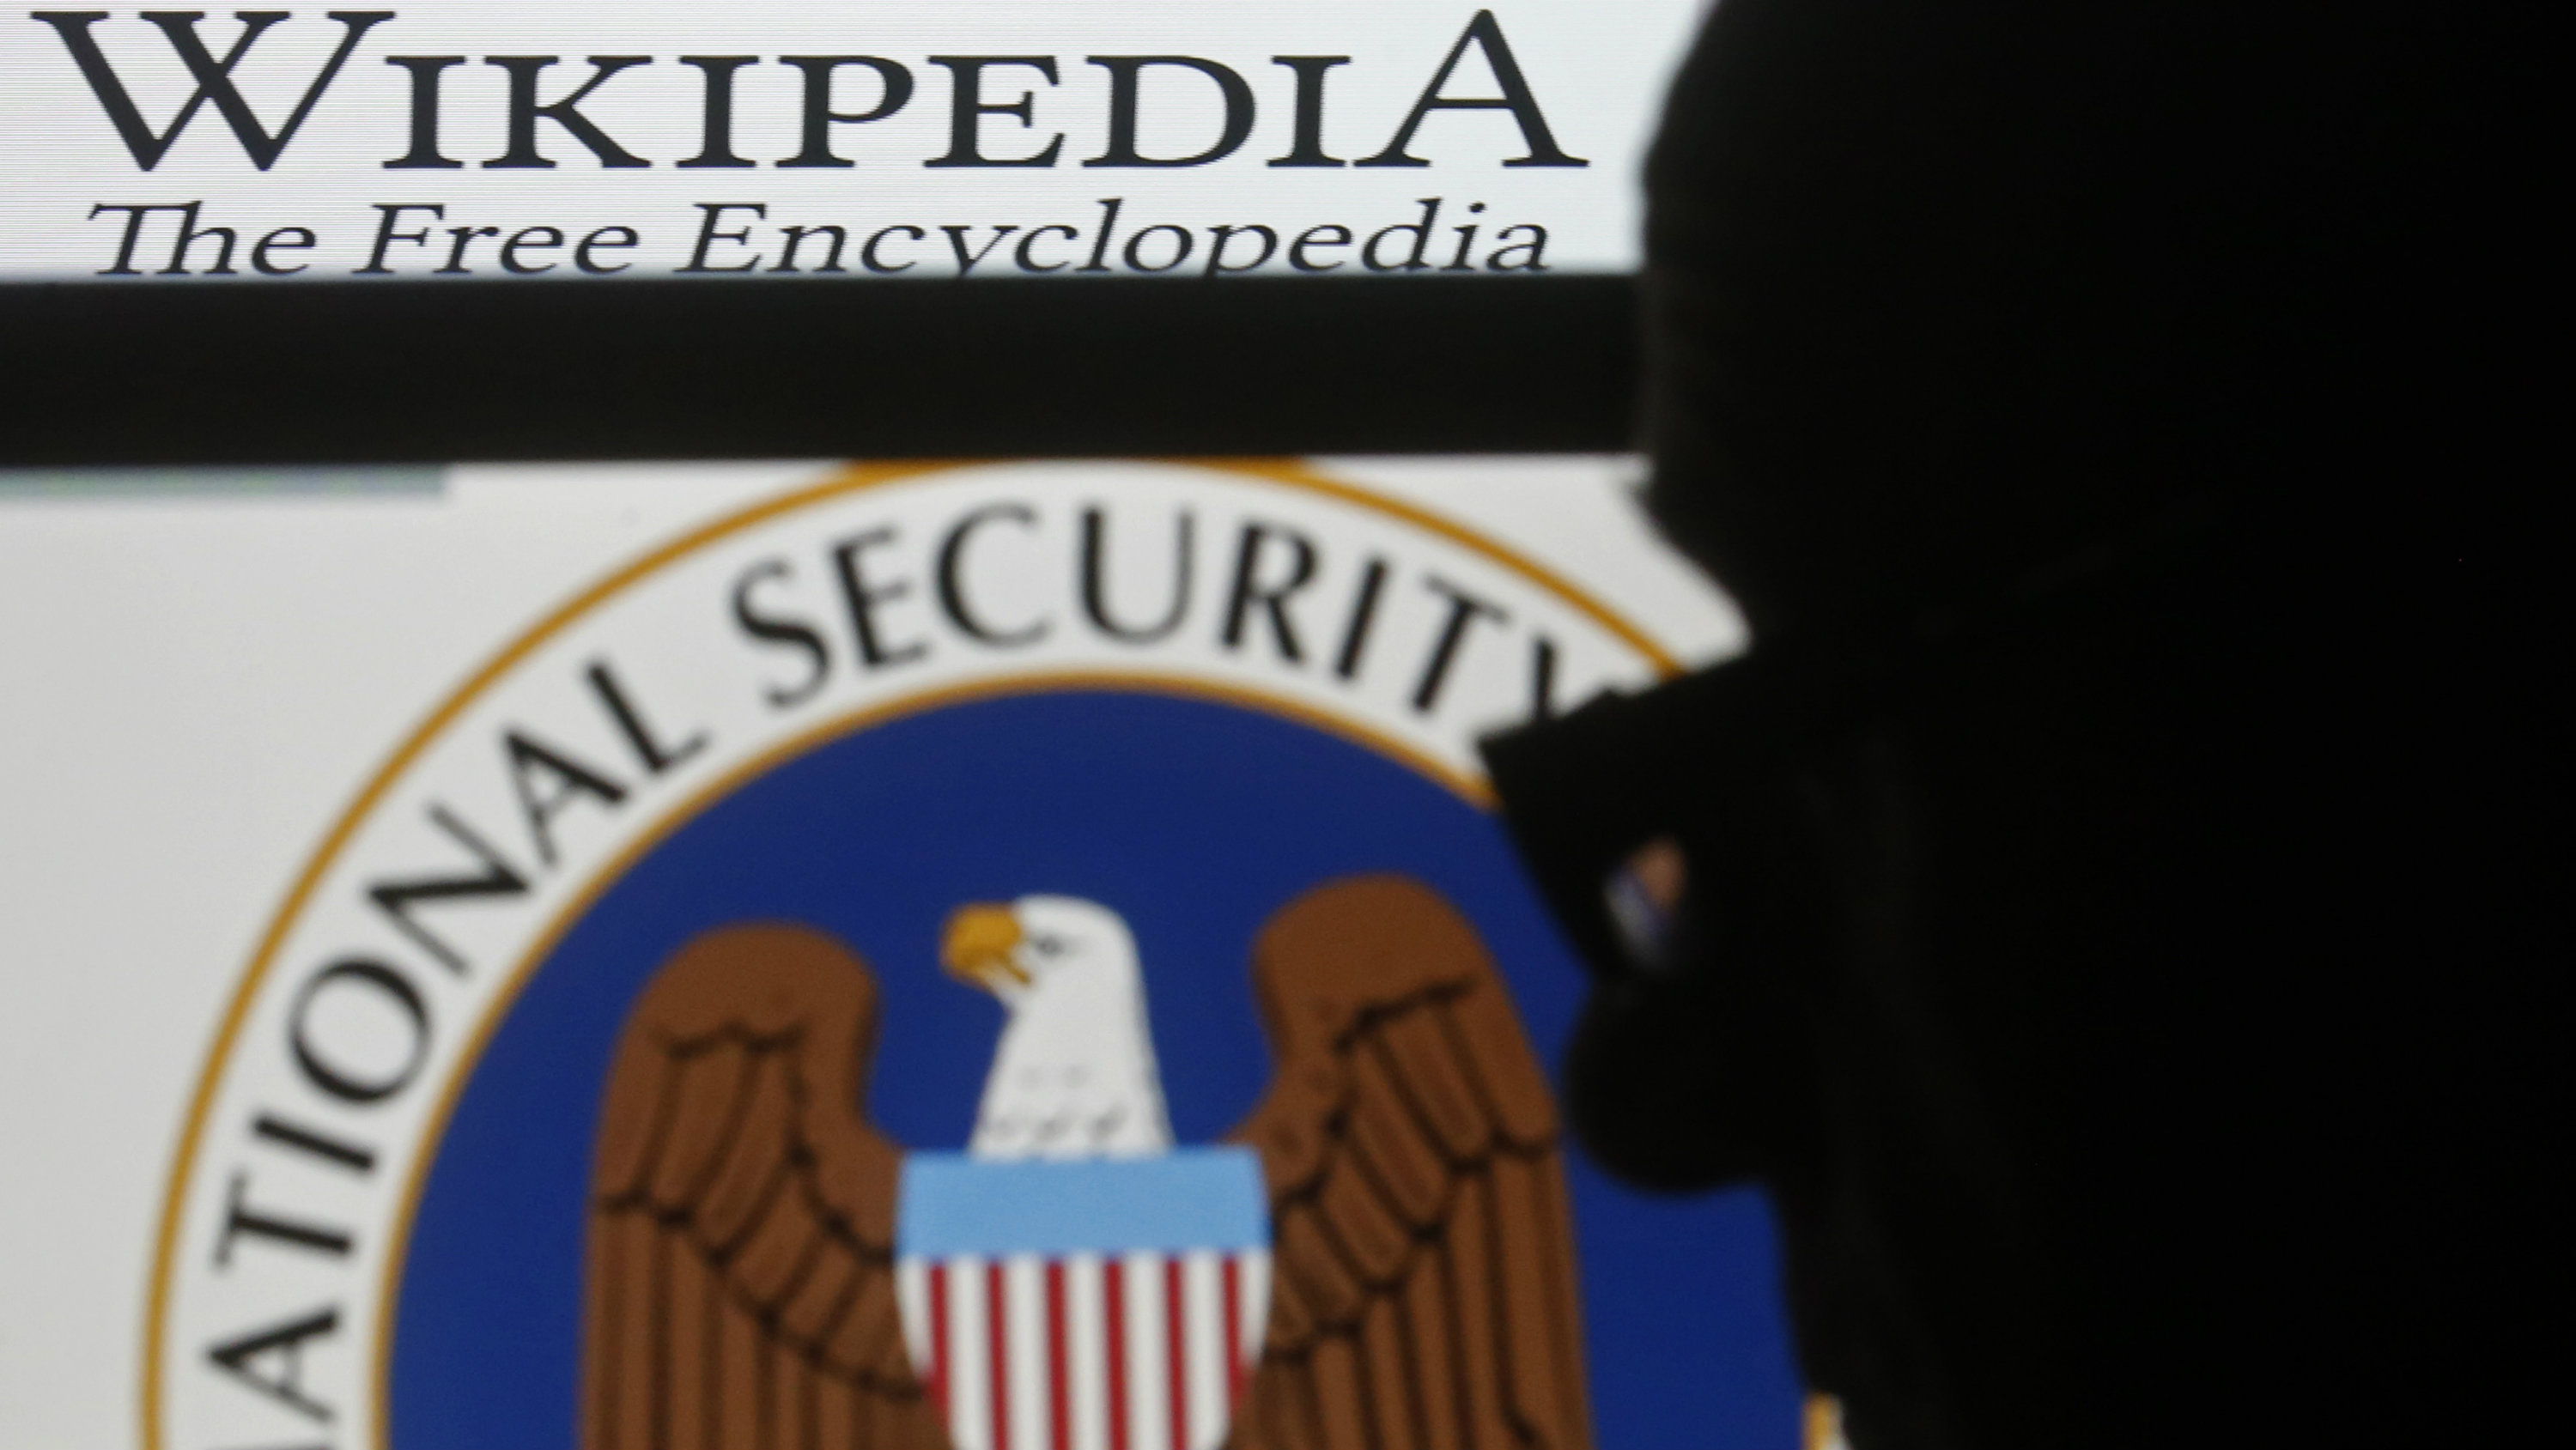 A man is silhouetted near logos of the U.S. National Security Agency (NSA) and Wikipedia in this photo illustration taken in Sarajevo March 11, 2015.